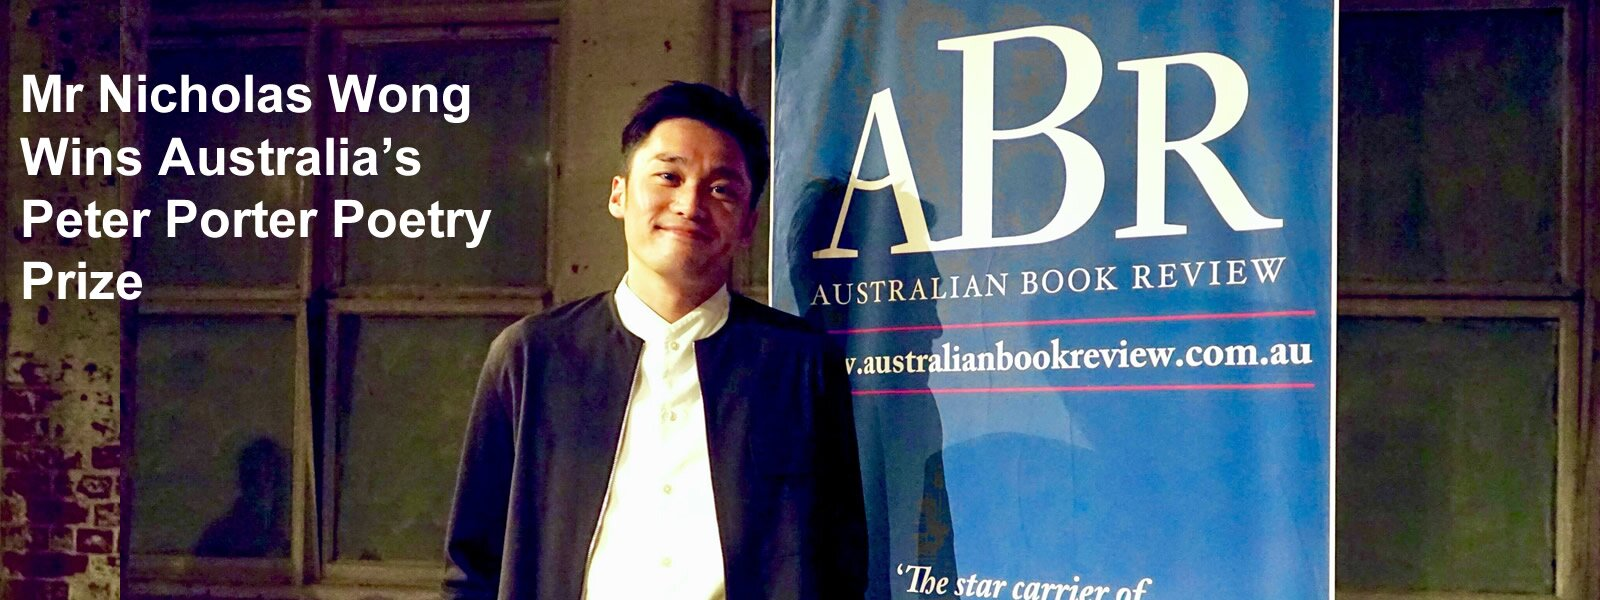 Mr Nicholas Wong Wins Australia's Peter Porter Poetry Prize